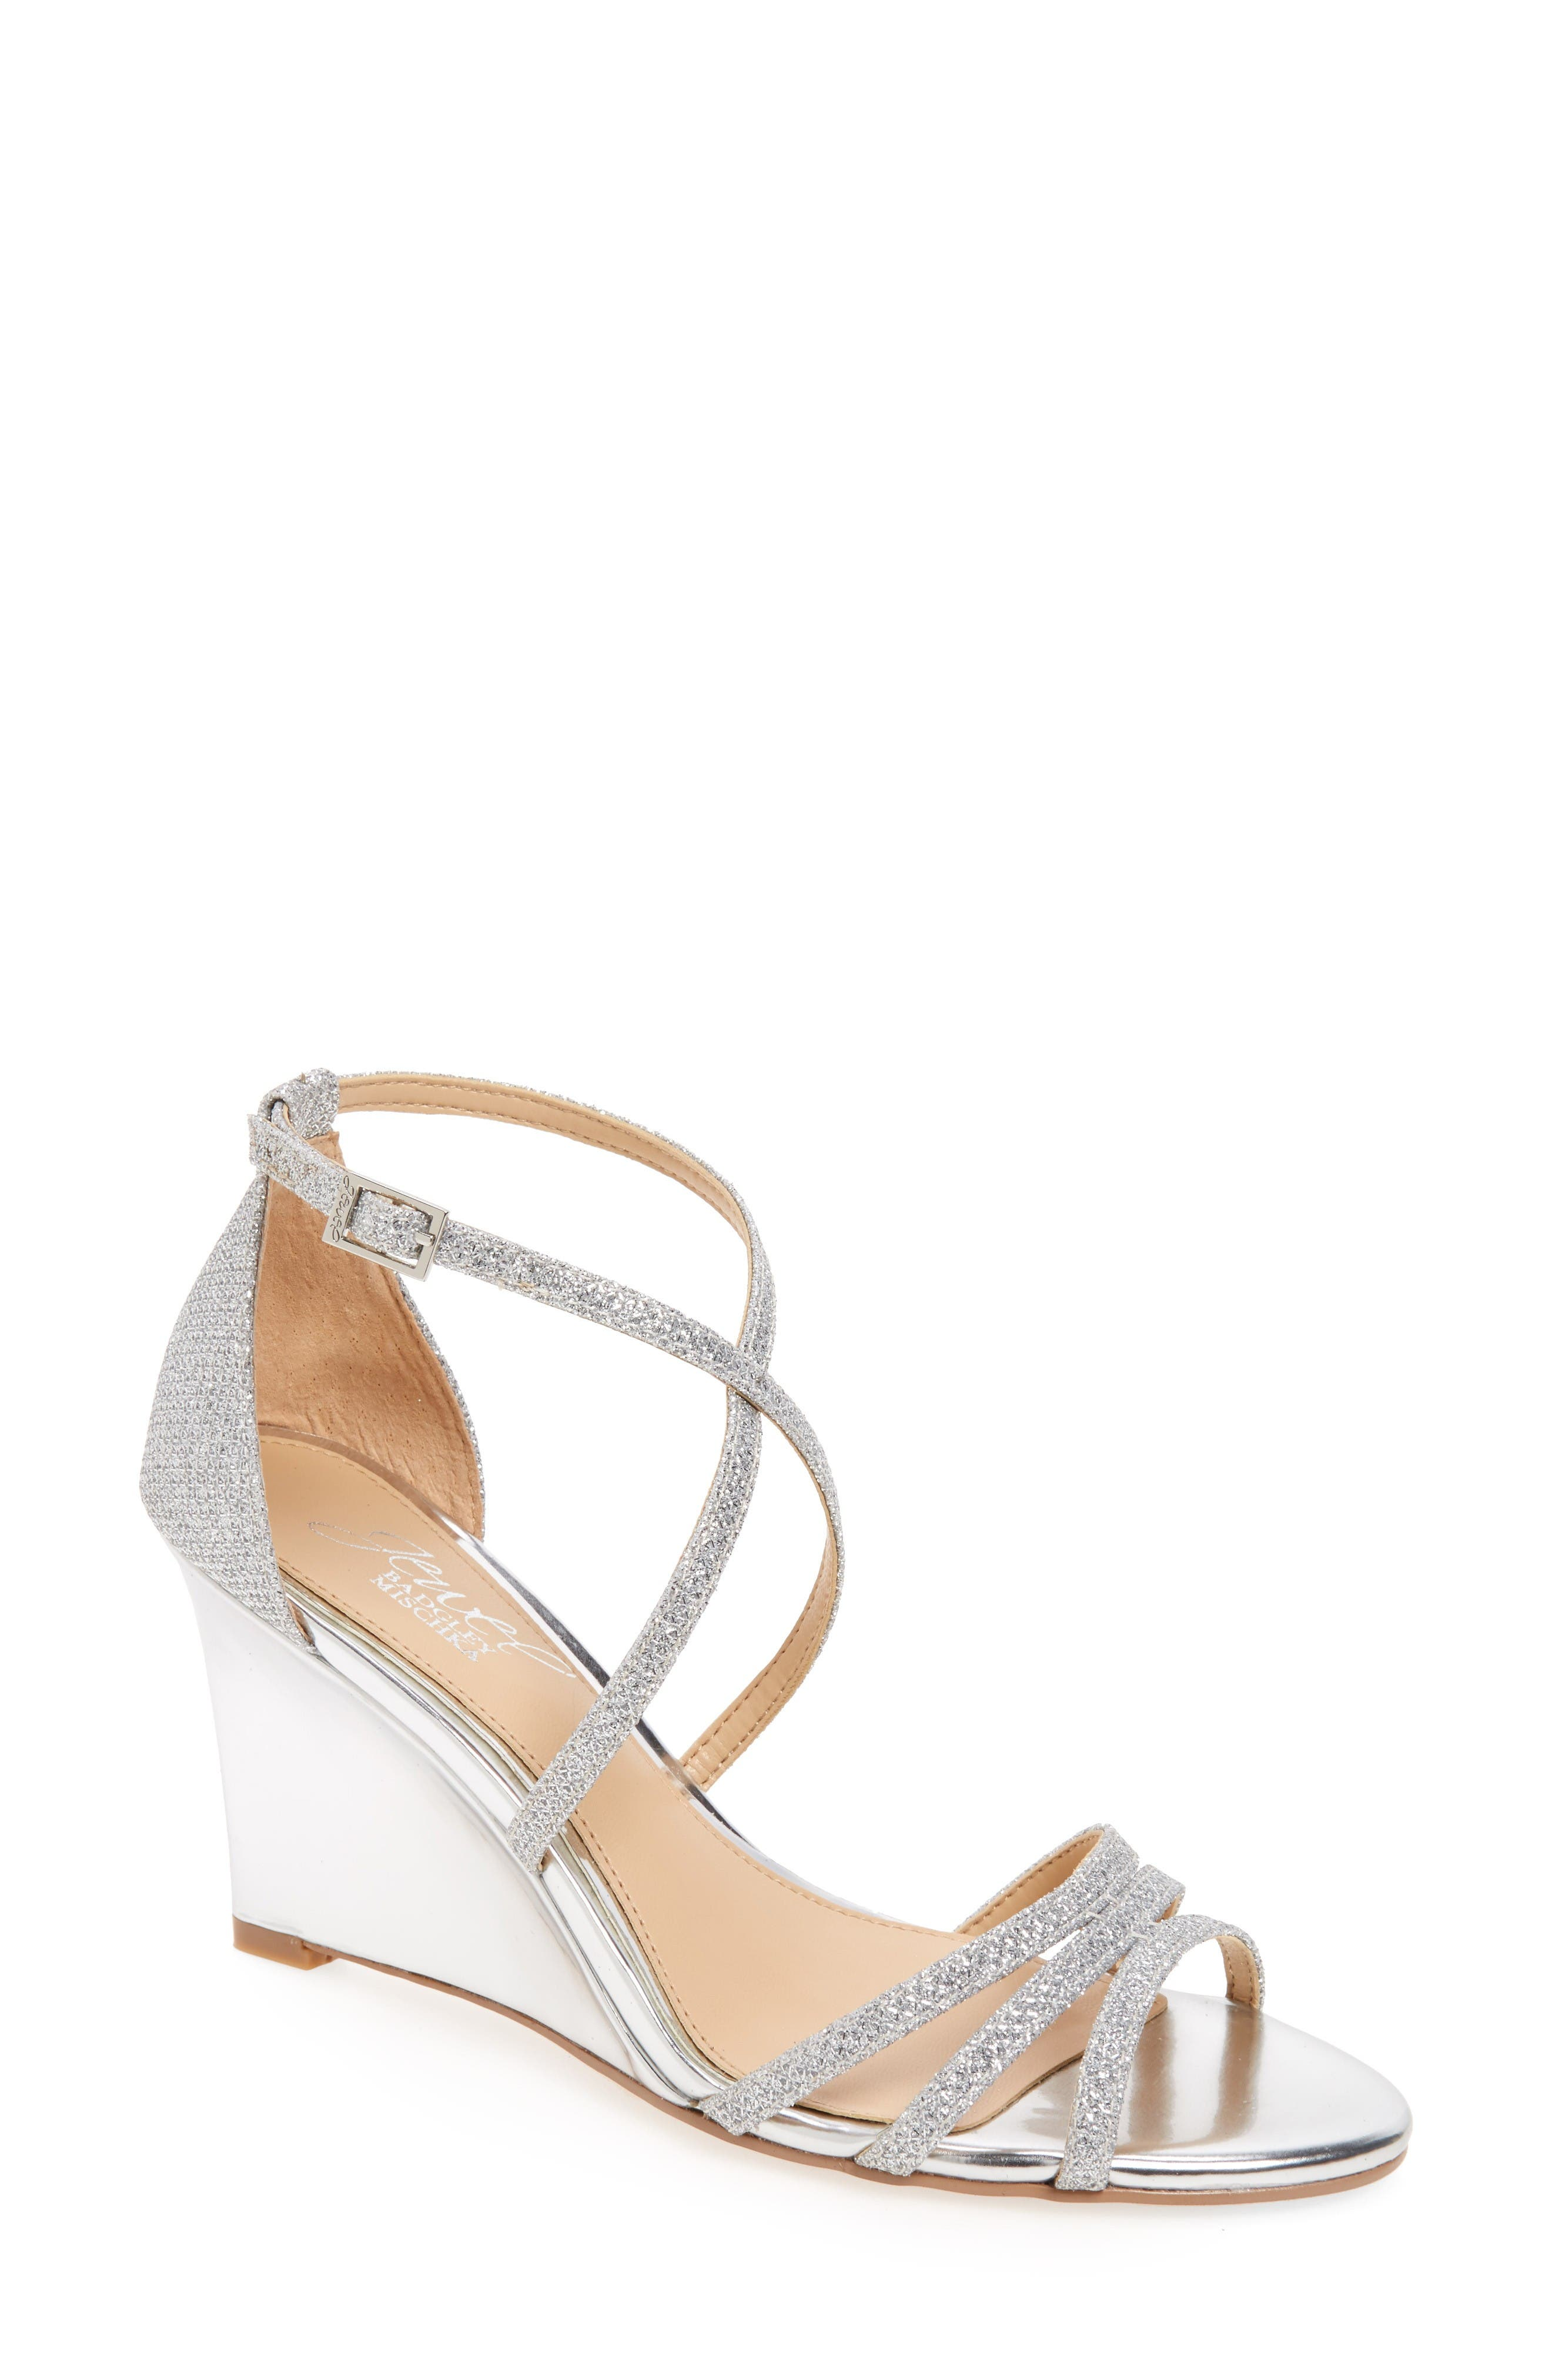 Jewel Badgley Mischka Hunt Glittery Wedge Sandal (Women)